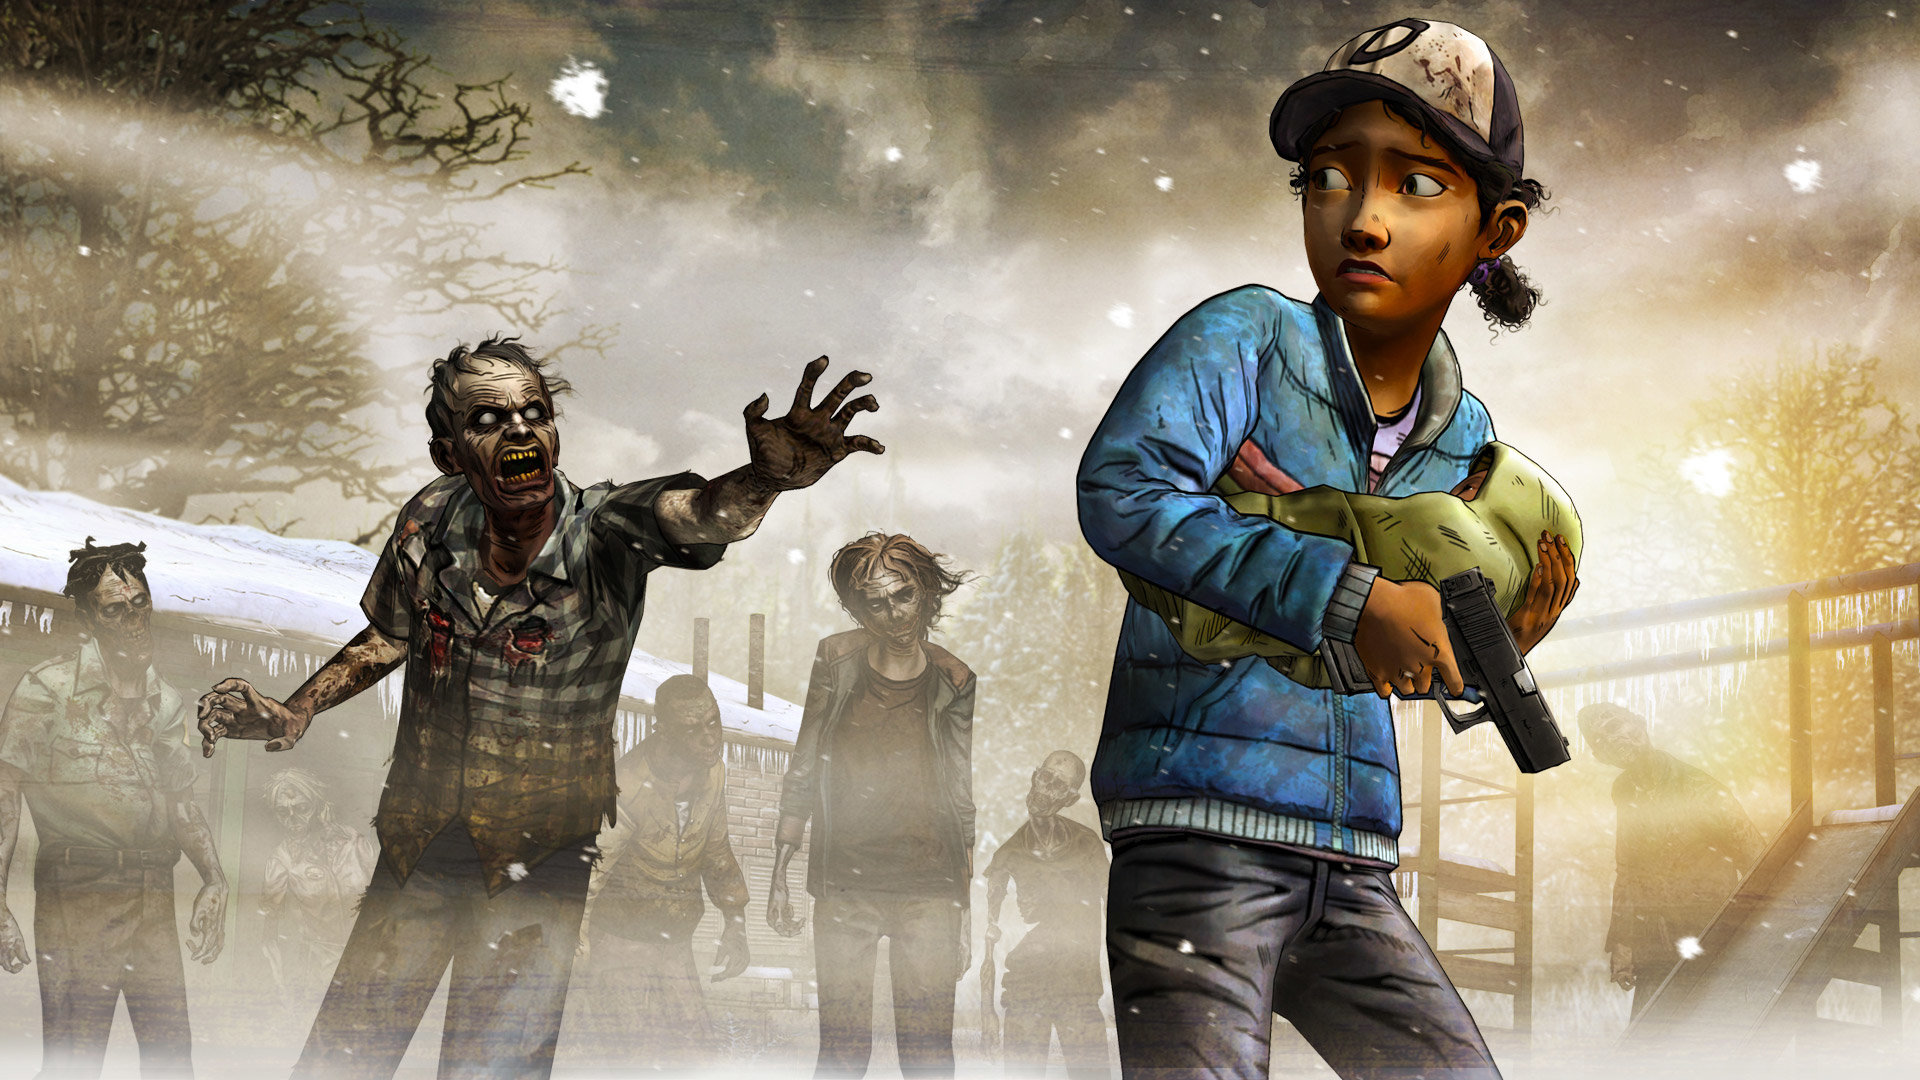 The Walking Dead Video Game Wallpapers Hd For Desktop Backgrounds